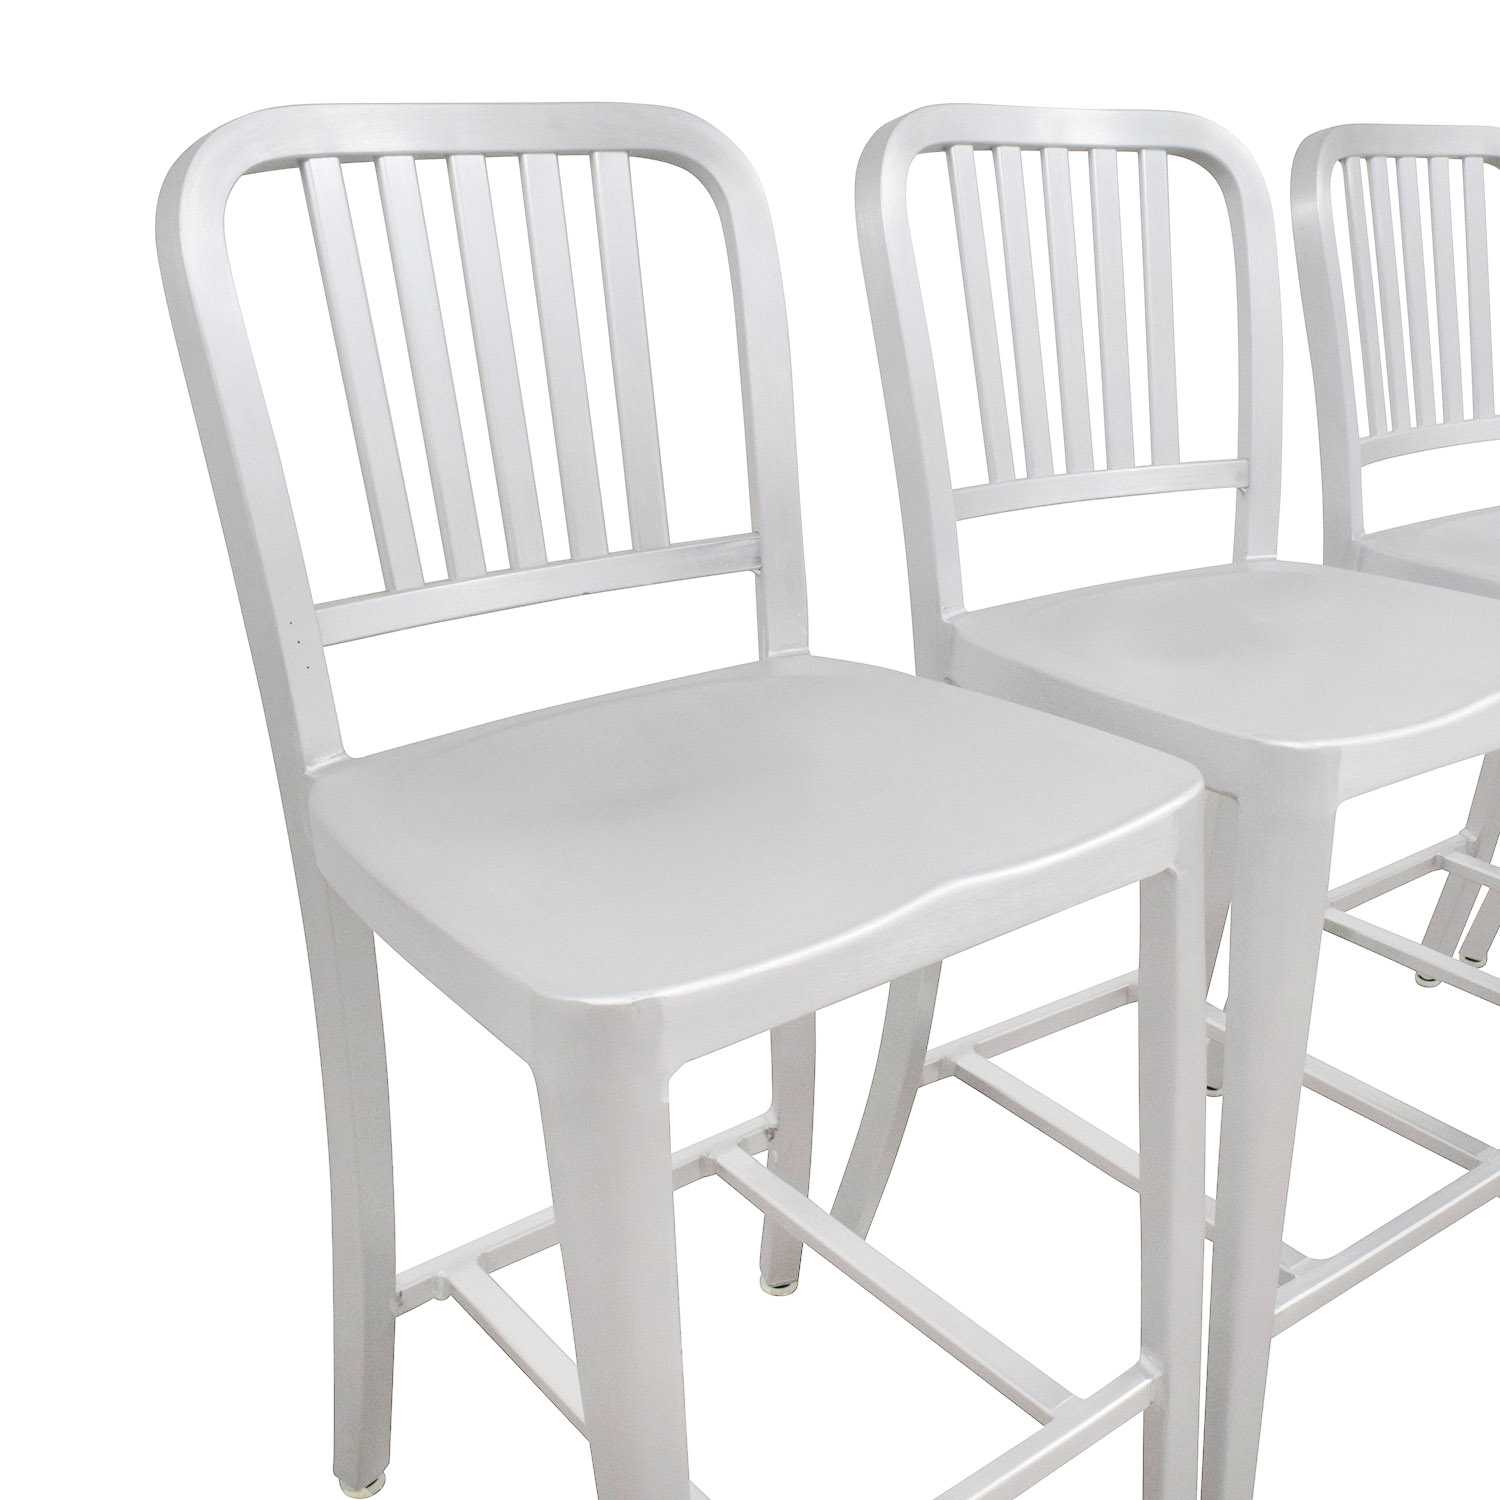 InMod Aluminum Counter Stools / Chairs